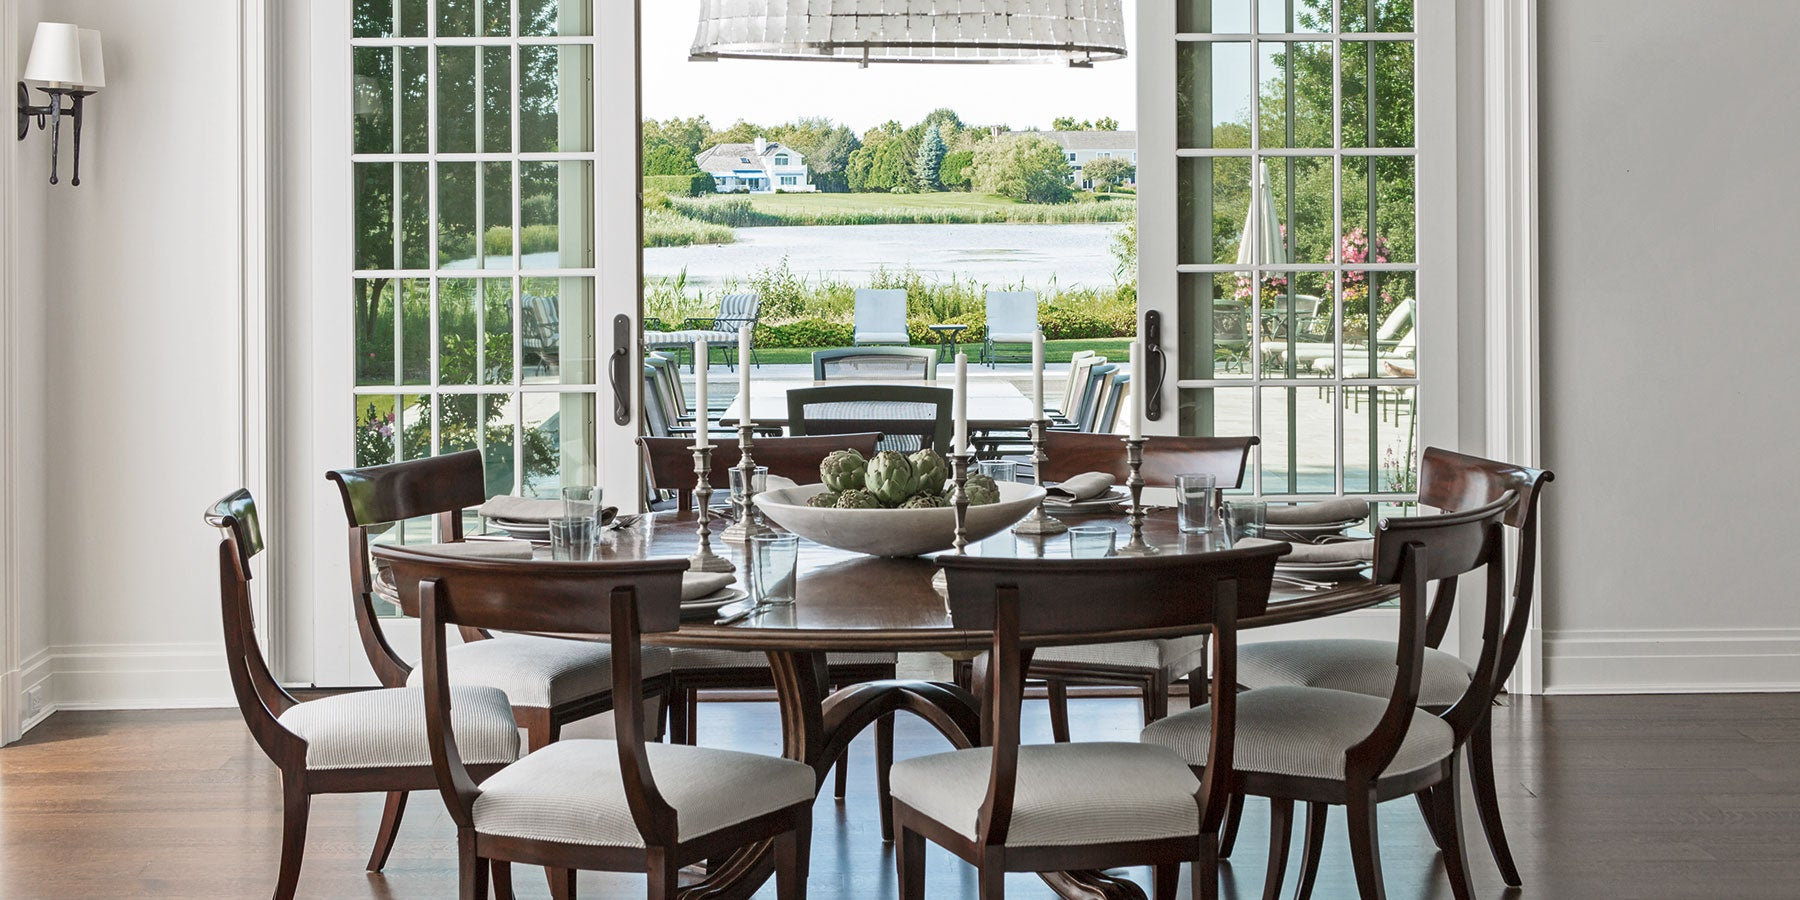 Ordinaire Mark Epstein Designs Personal Experiences, Not Just Interiors